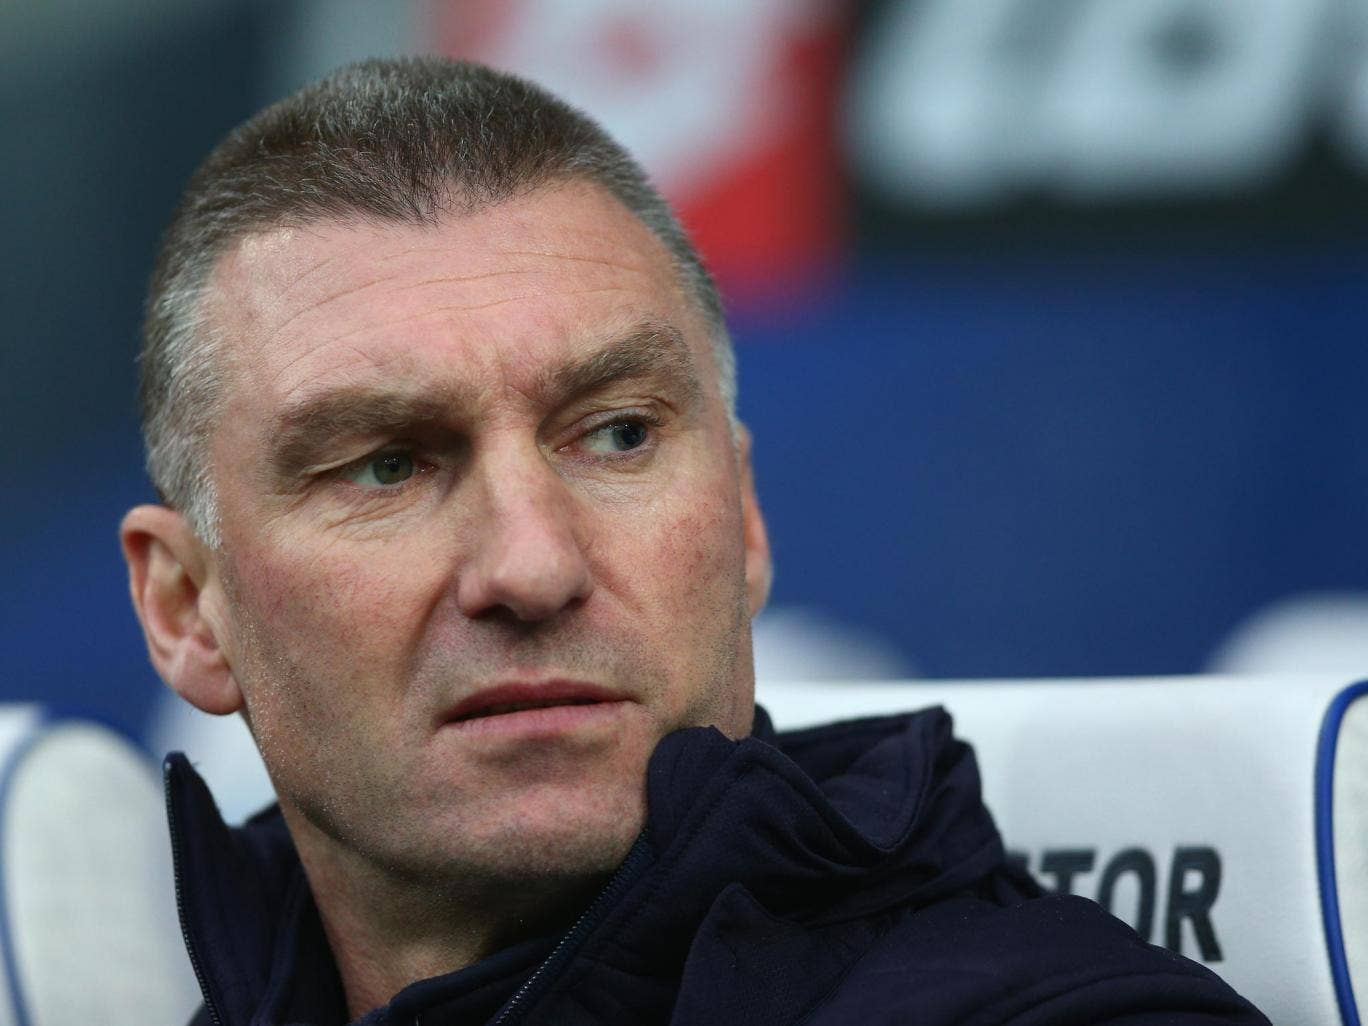 Leicester manager Nigel Pearson has warned his side against letting their Championship lead slip after the 4-1 home defeat to Brighton